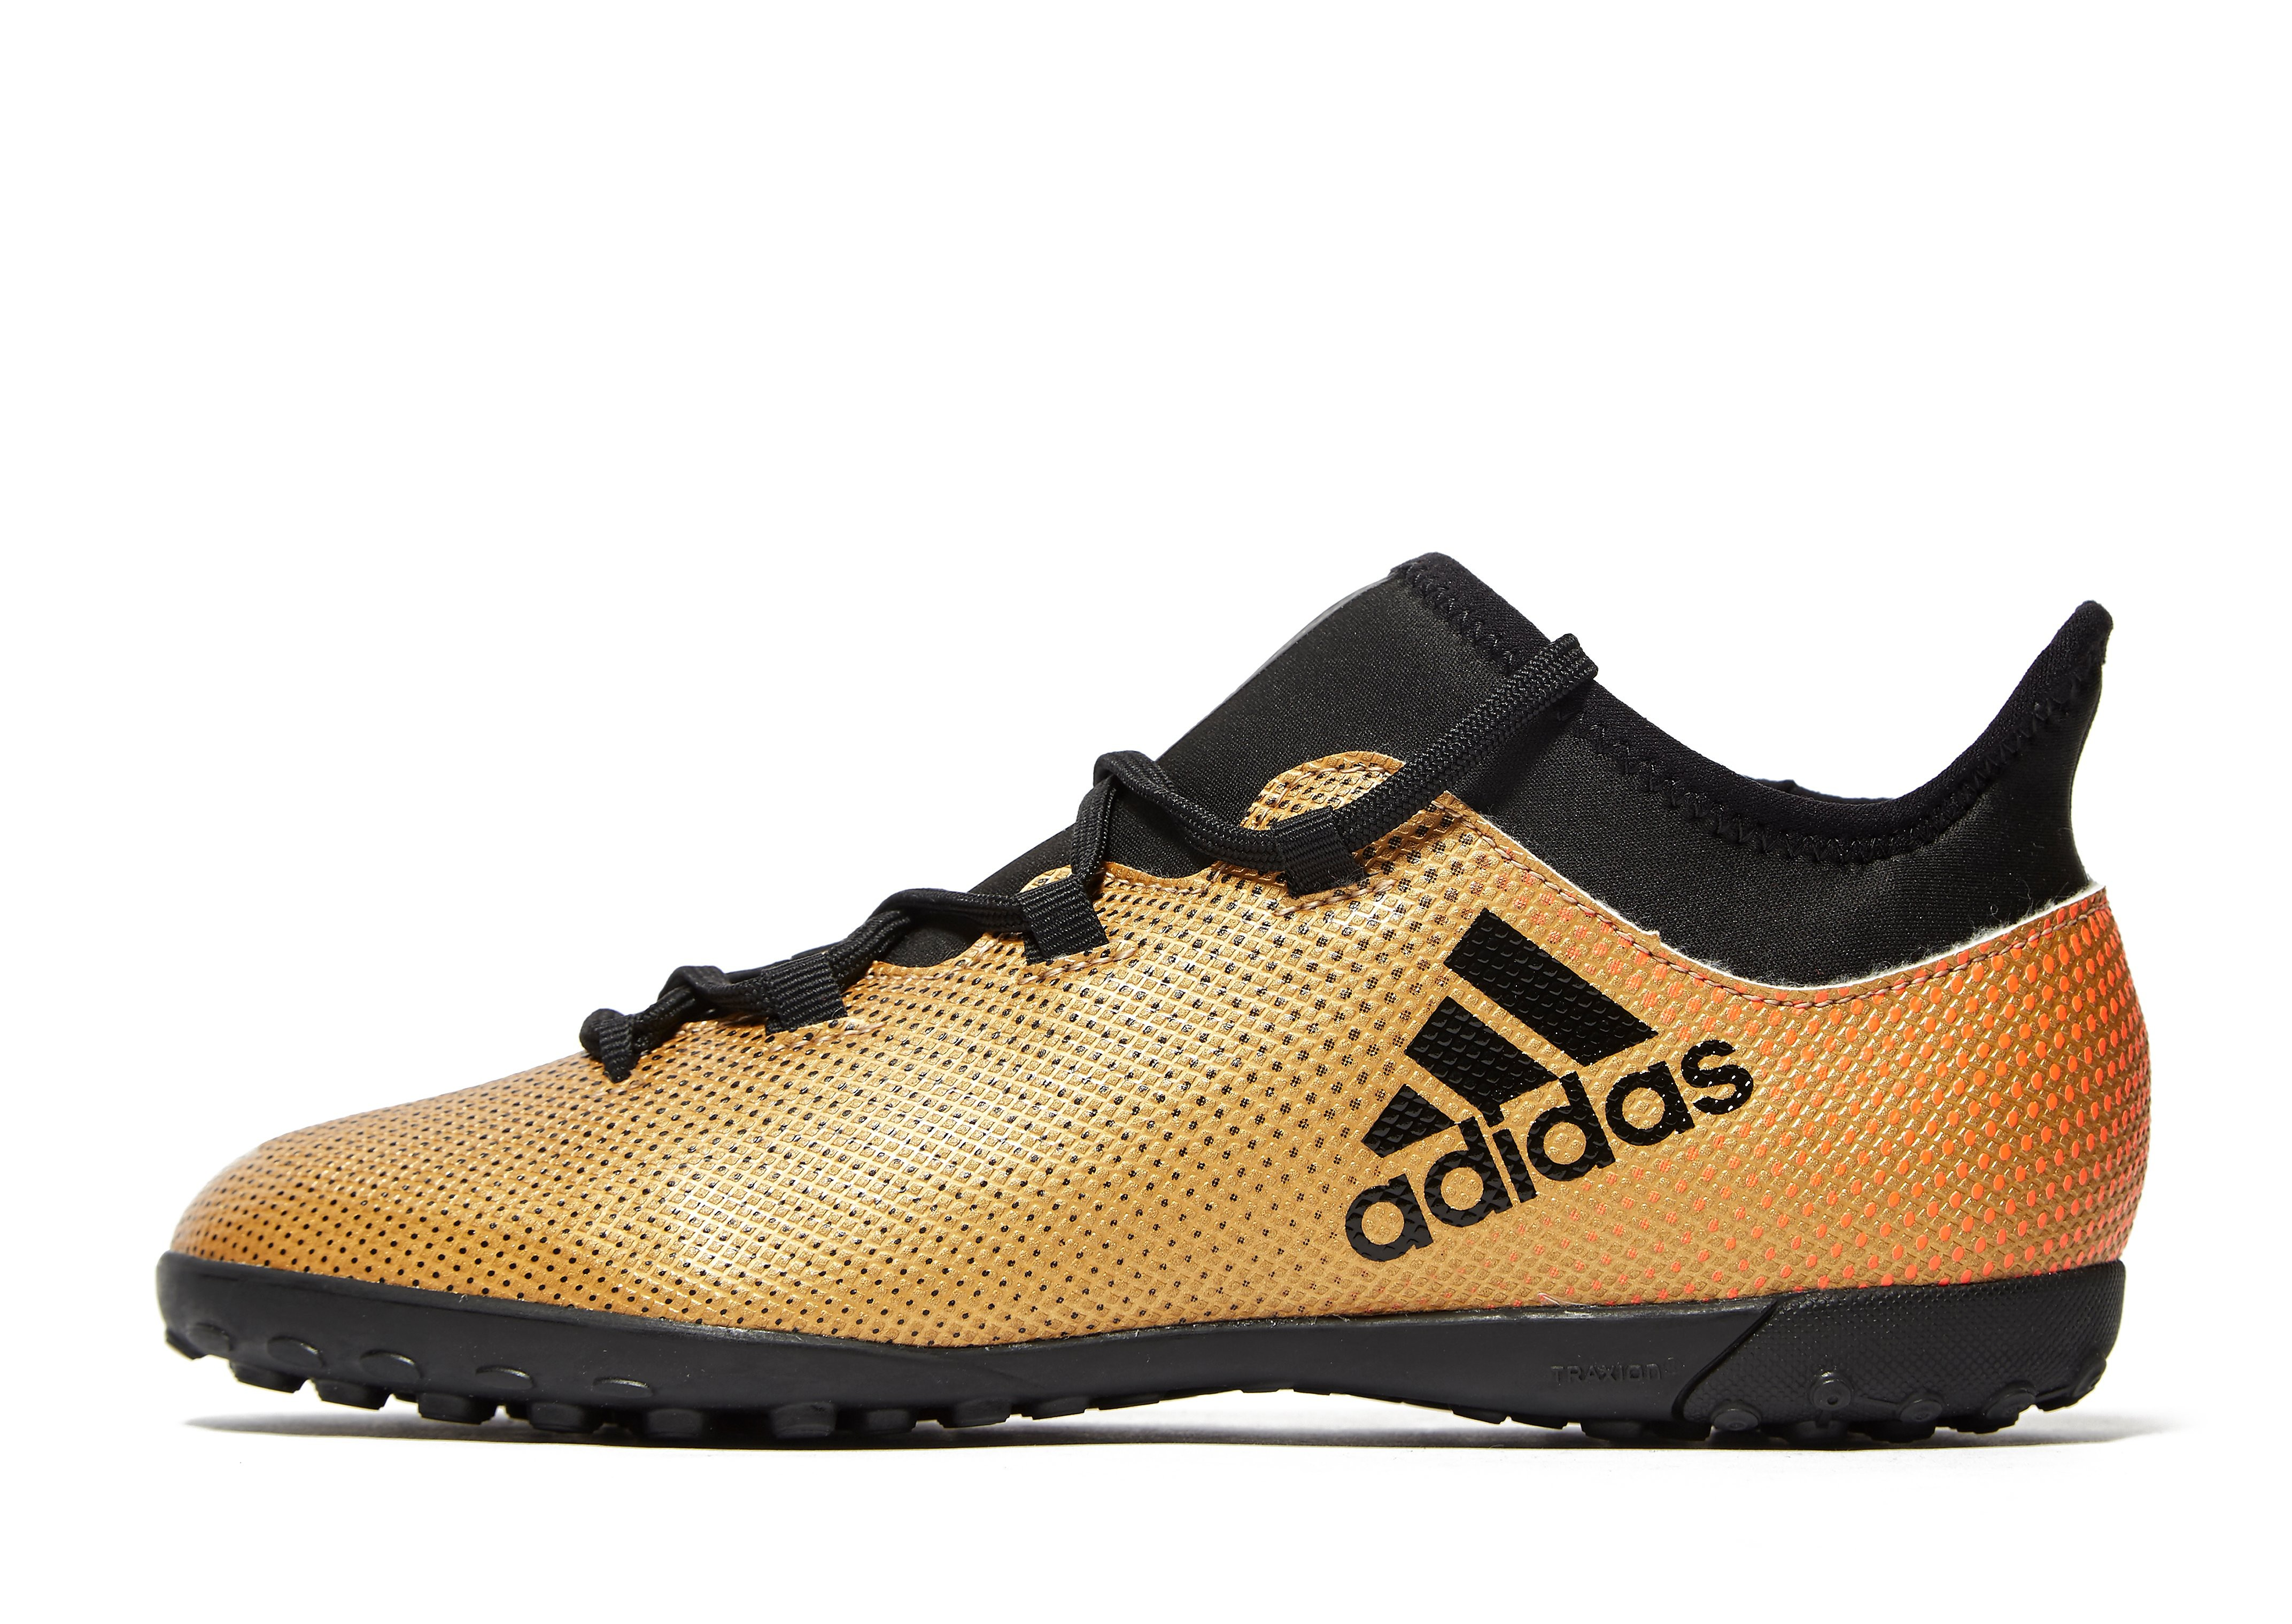 adidas SkyStalker X 17.3 TF Junior